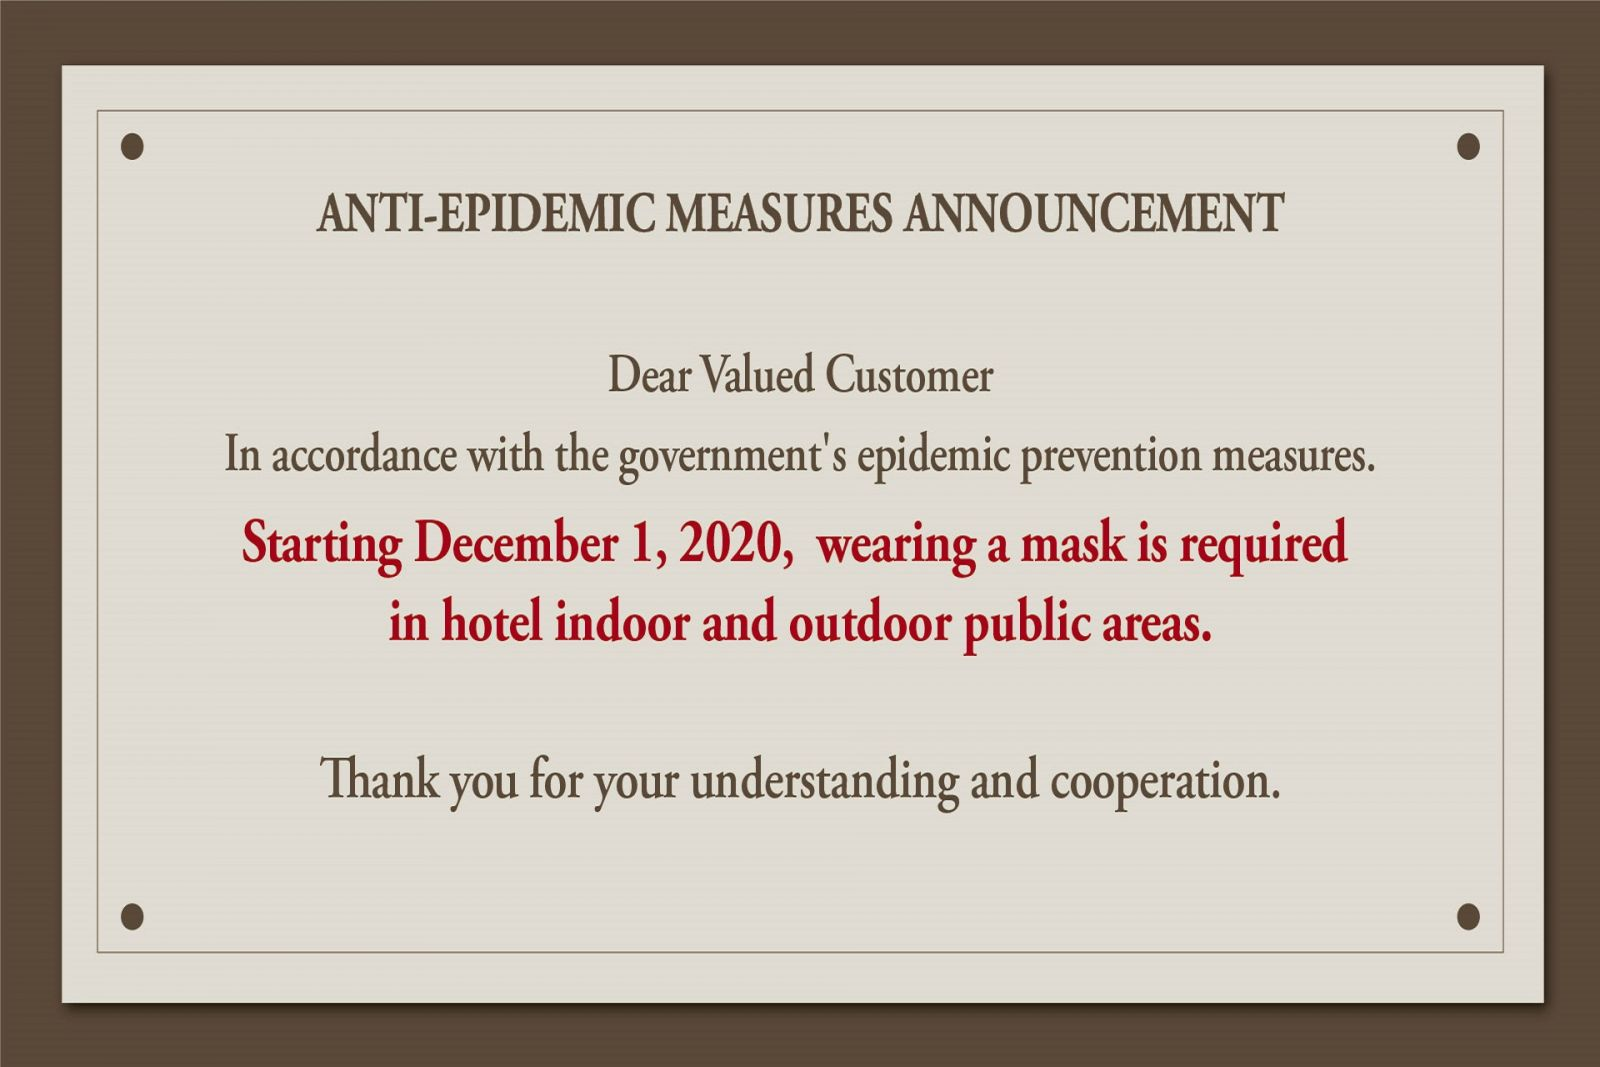 【NOTICE】Starting December 1, 2020, wearing a mask is required in hotel.